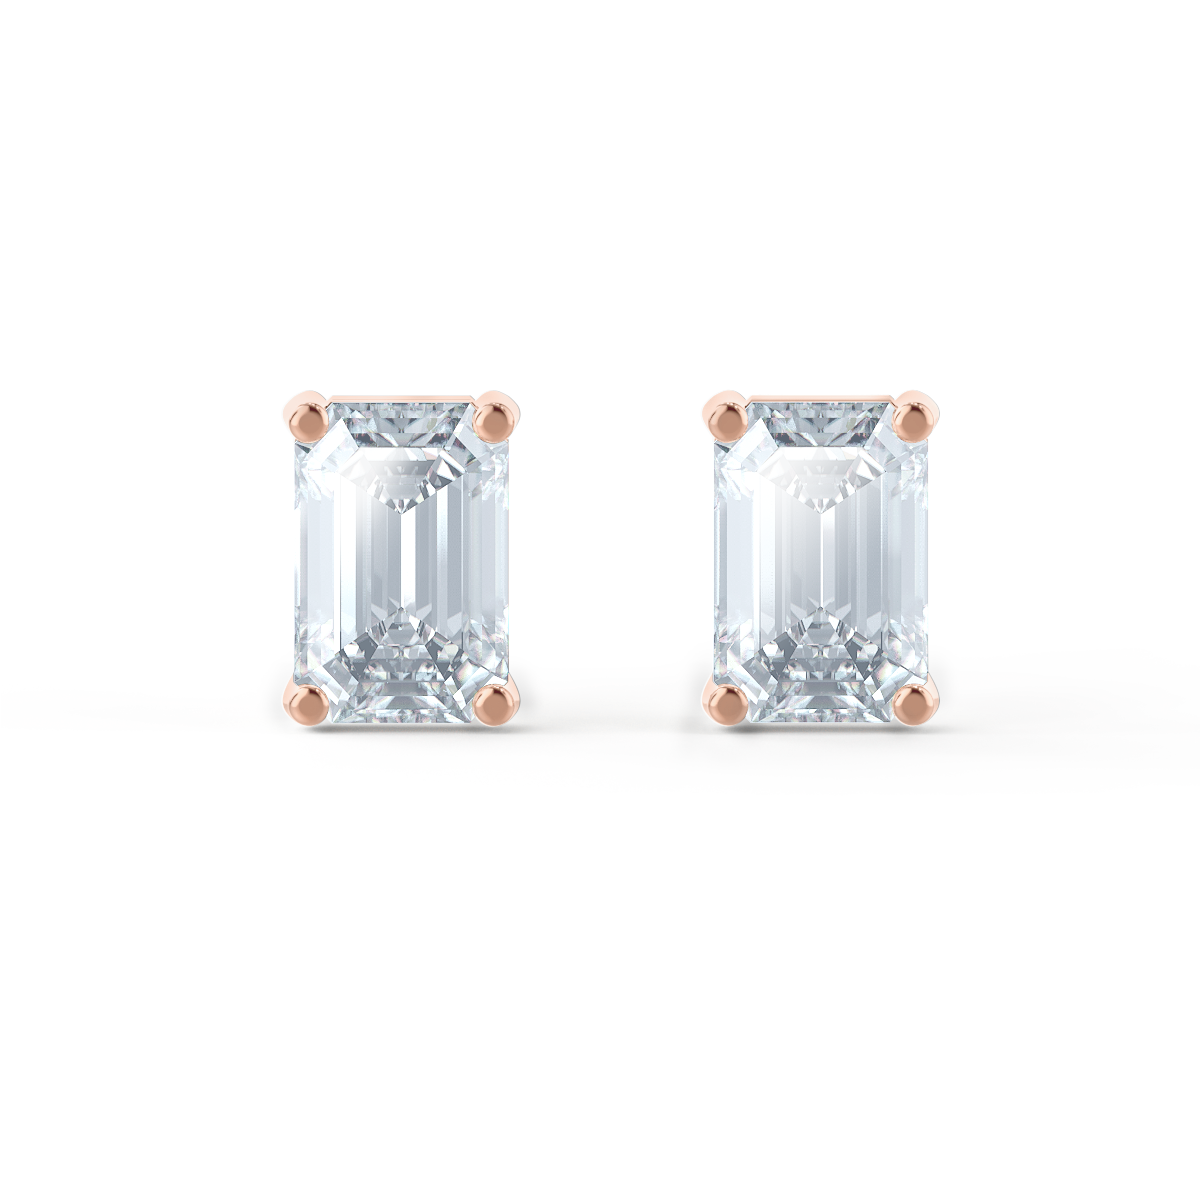 Lily Arkwright Earrings AVIANA - Charles & Colvard Moissanite 18k Rose Gold Emerald Stud Earrings